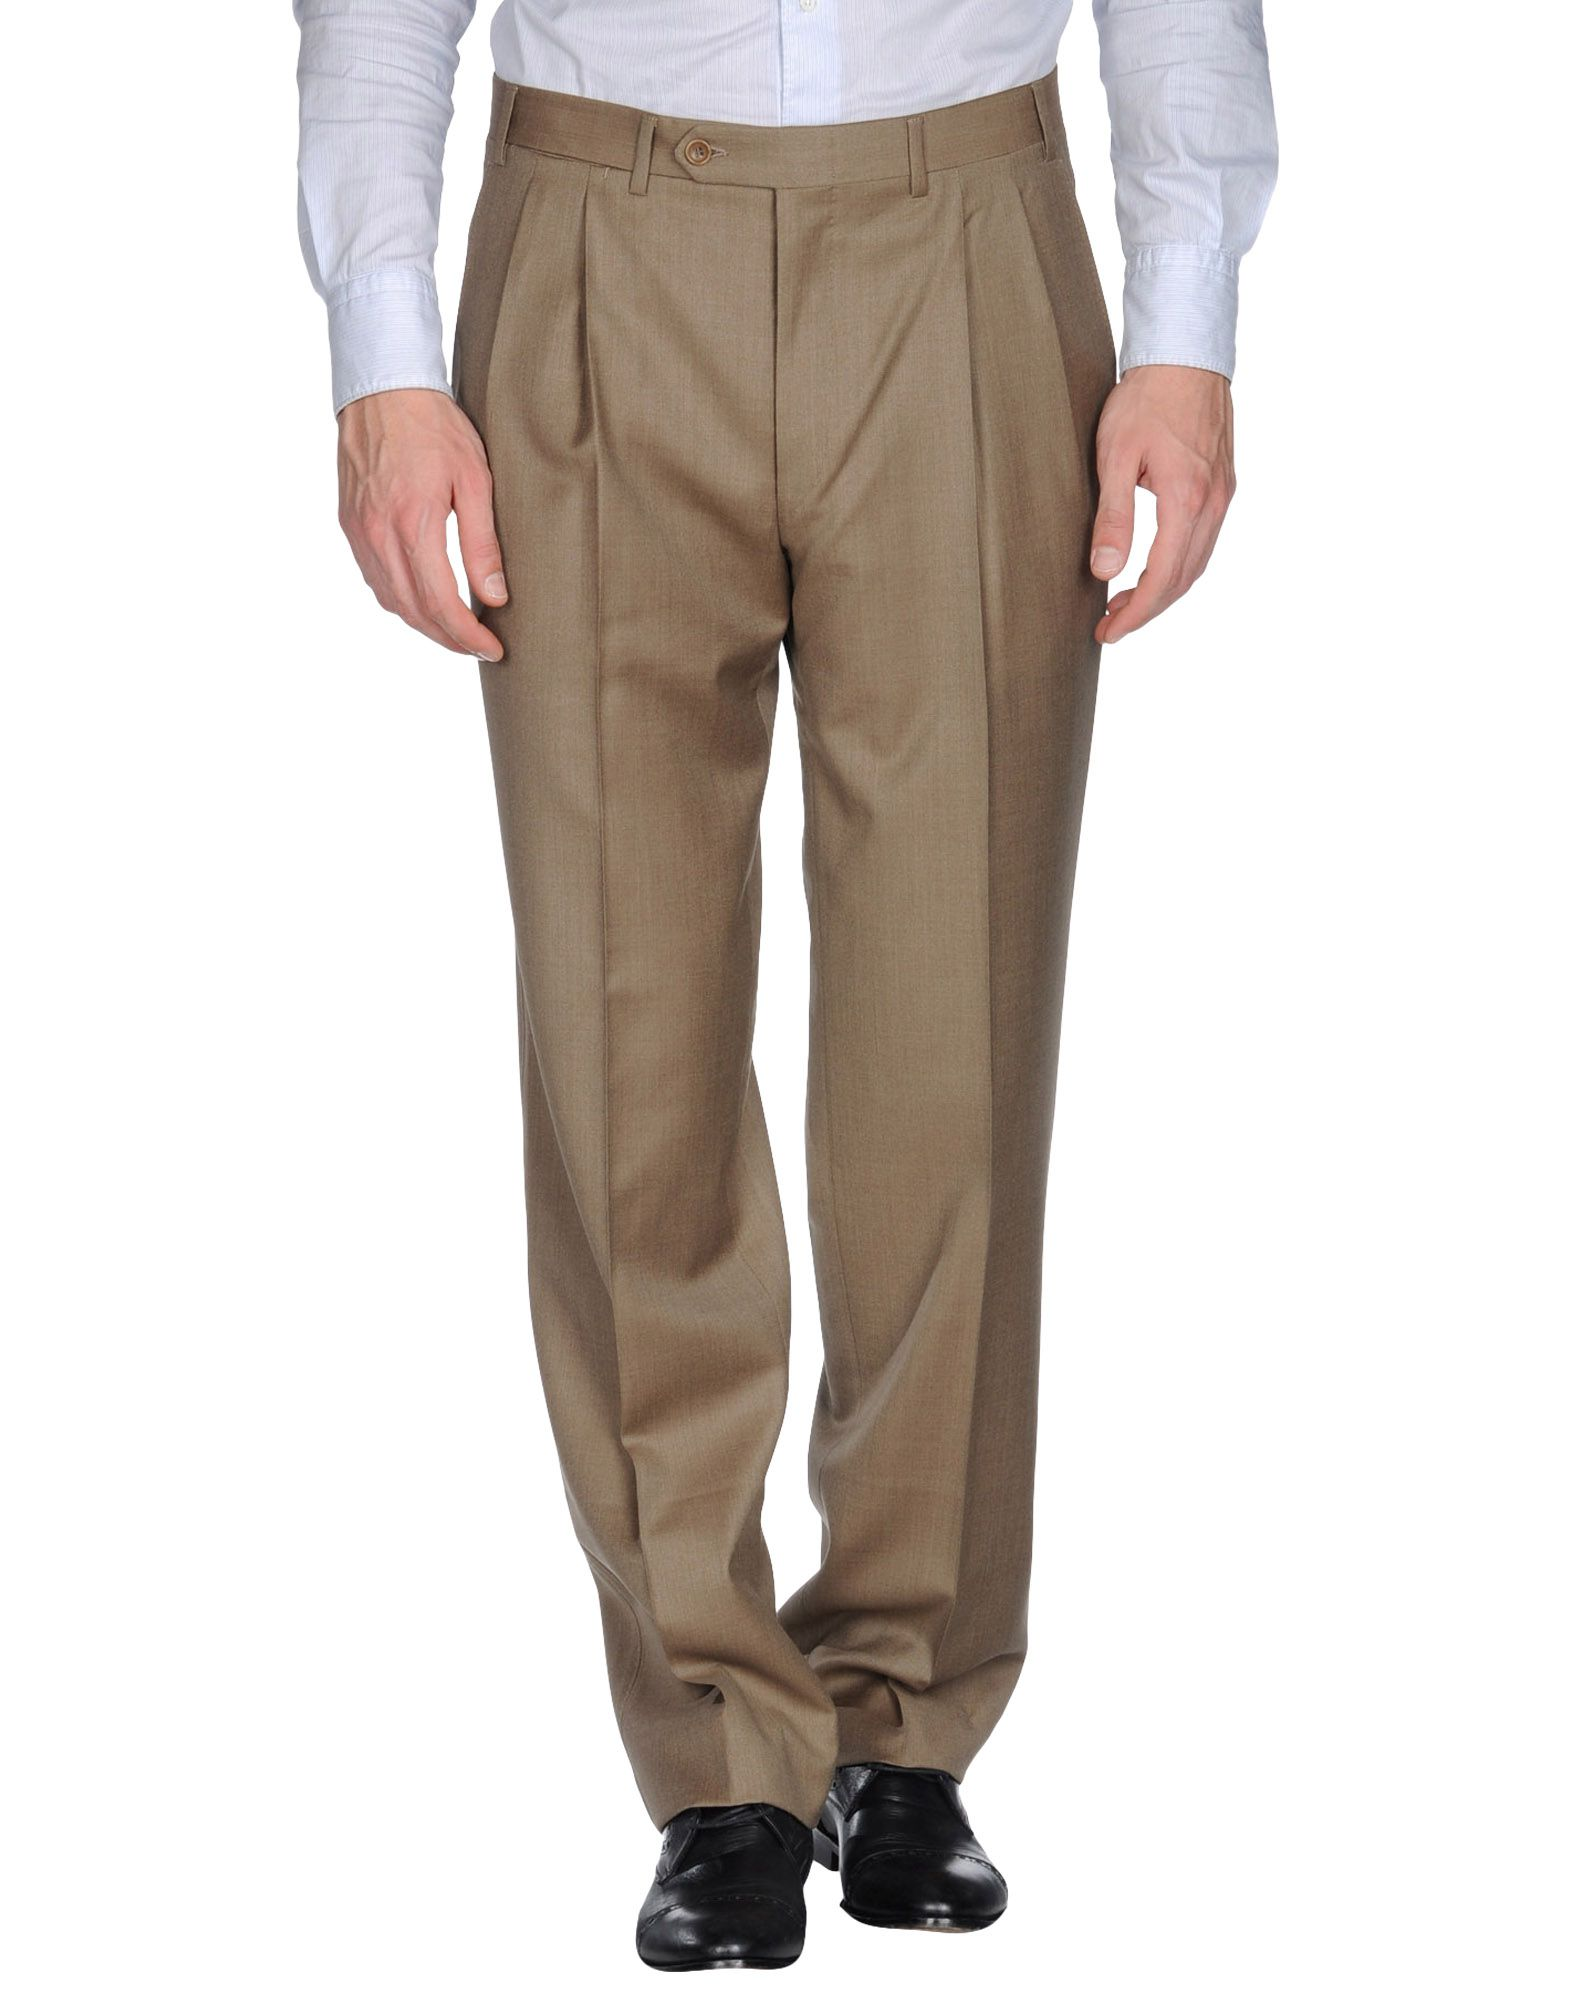 Dress to impress with Men's Dress Pants from Kohl's. Men's Dress Slacks are essential for your formal wardrobe. Kohl's offers many different styles and types of men's pants, like big & tall dress pants, men's flat-front dress pants, and men's pleated dress pants.